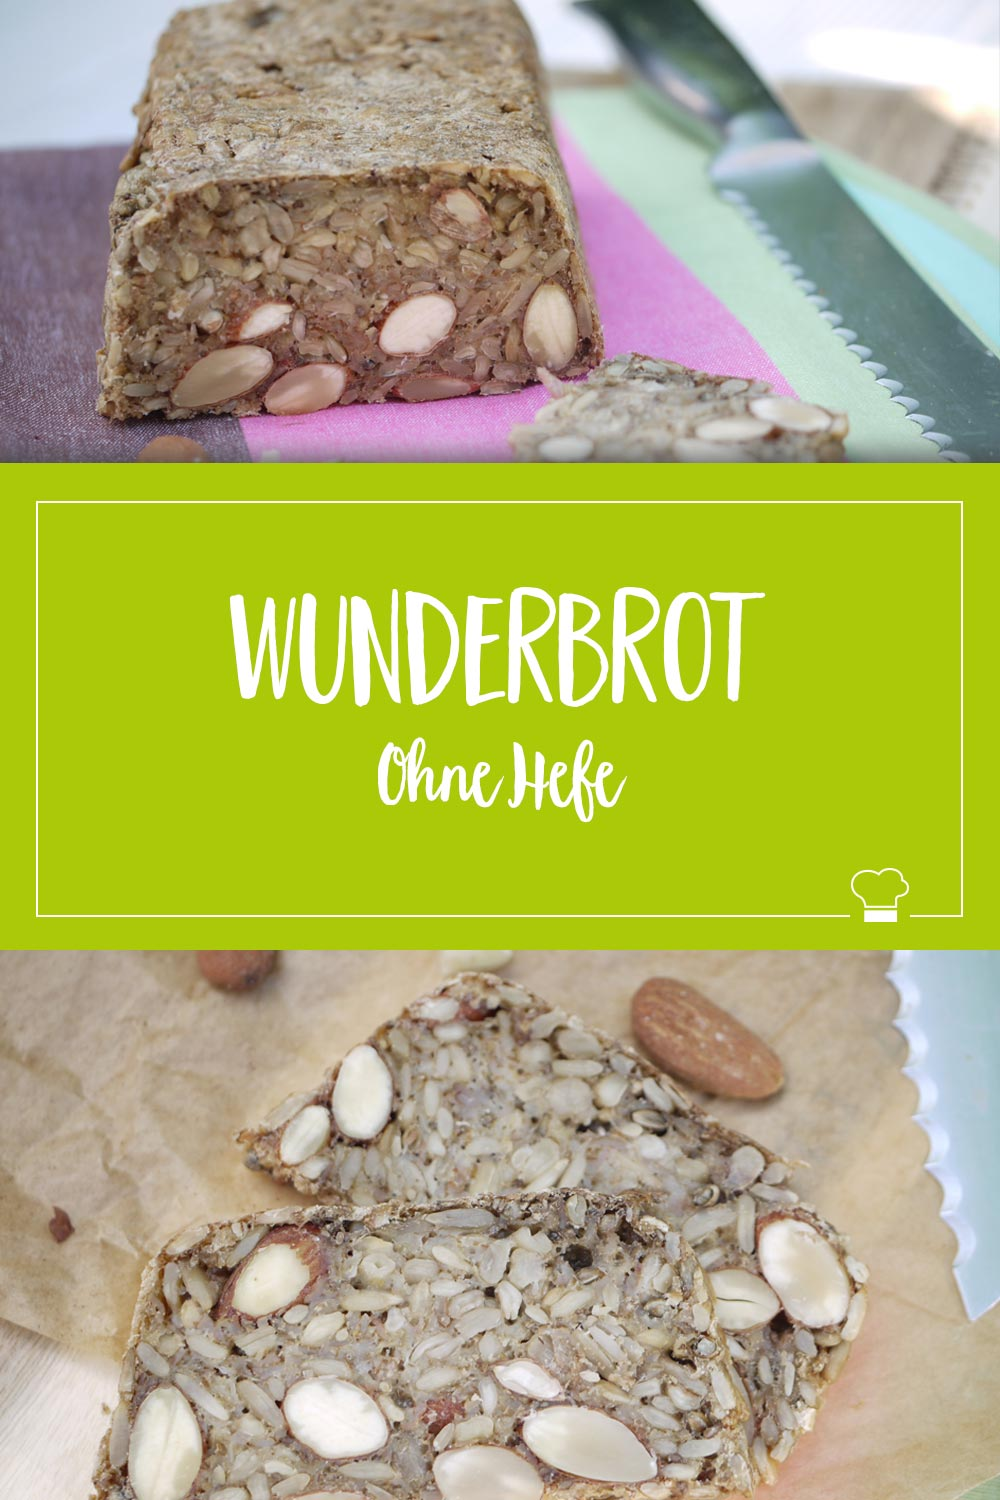 SuperBrot Pinterest